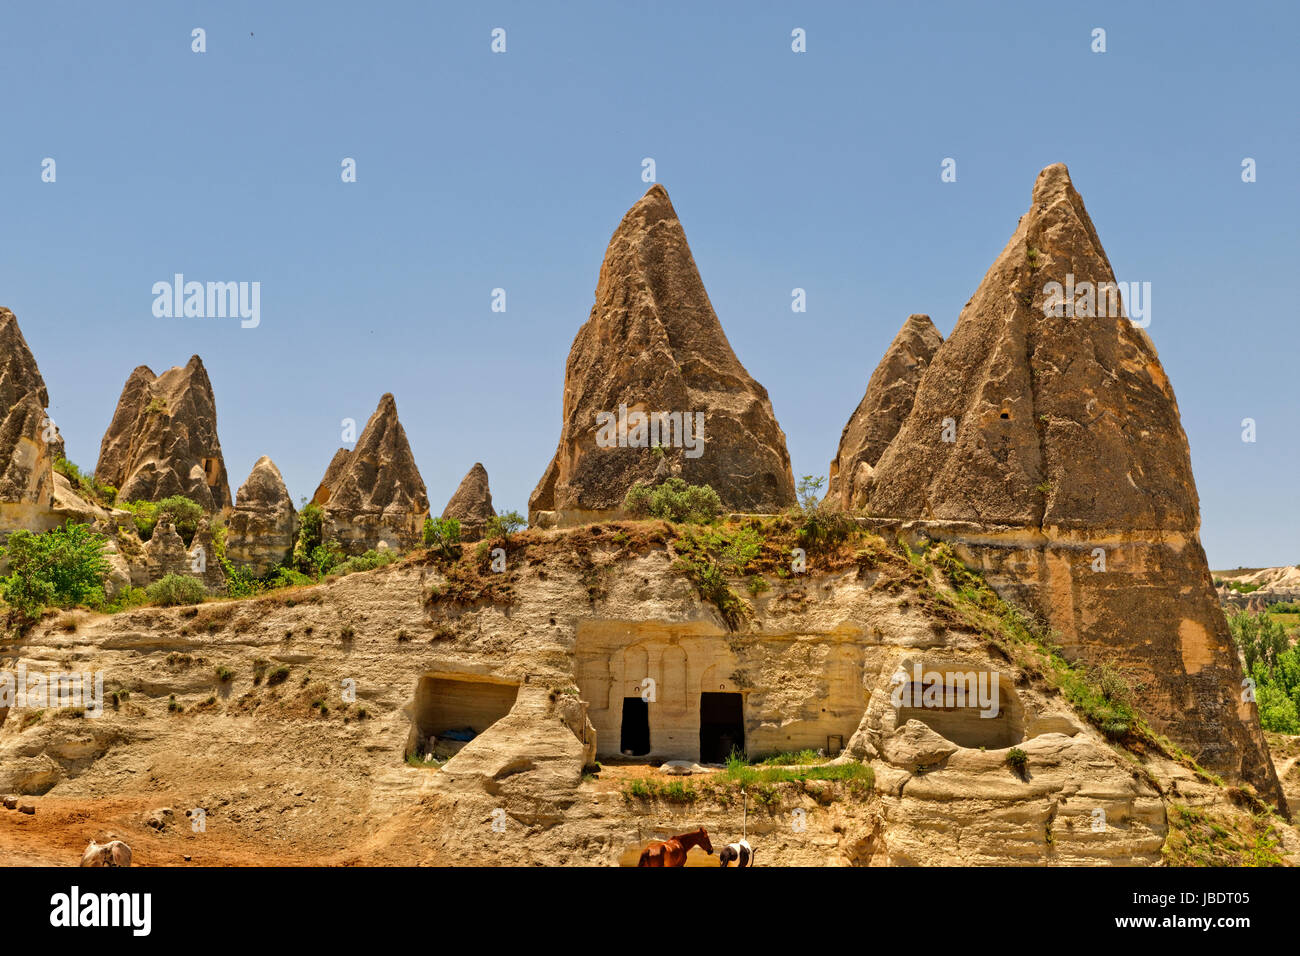 Cave dwellings at Goreme National Park, Cappadocia, Turkey - Stock Image